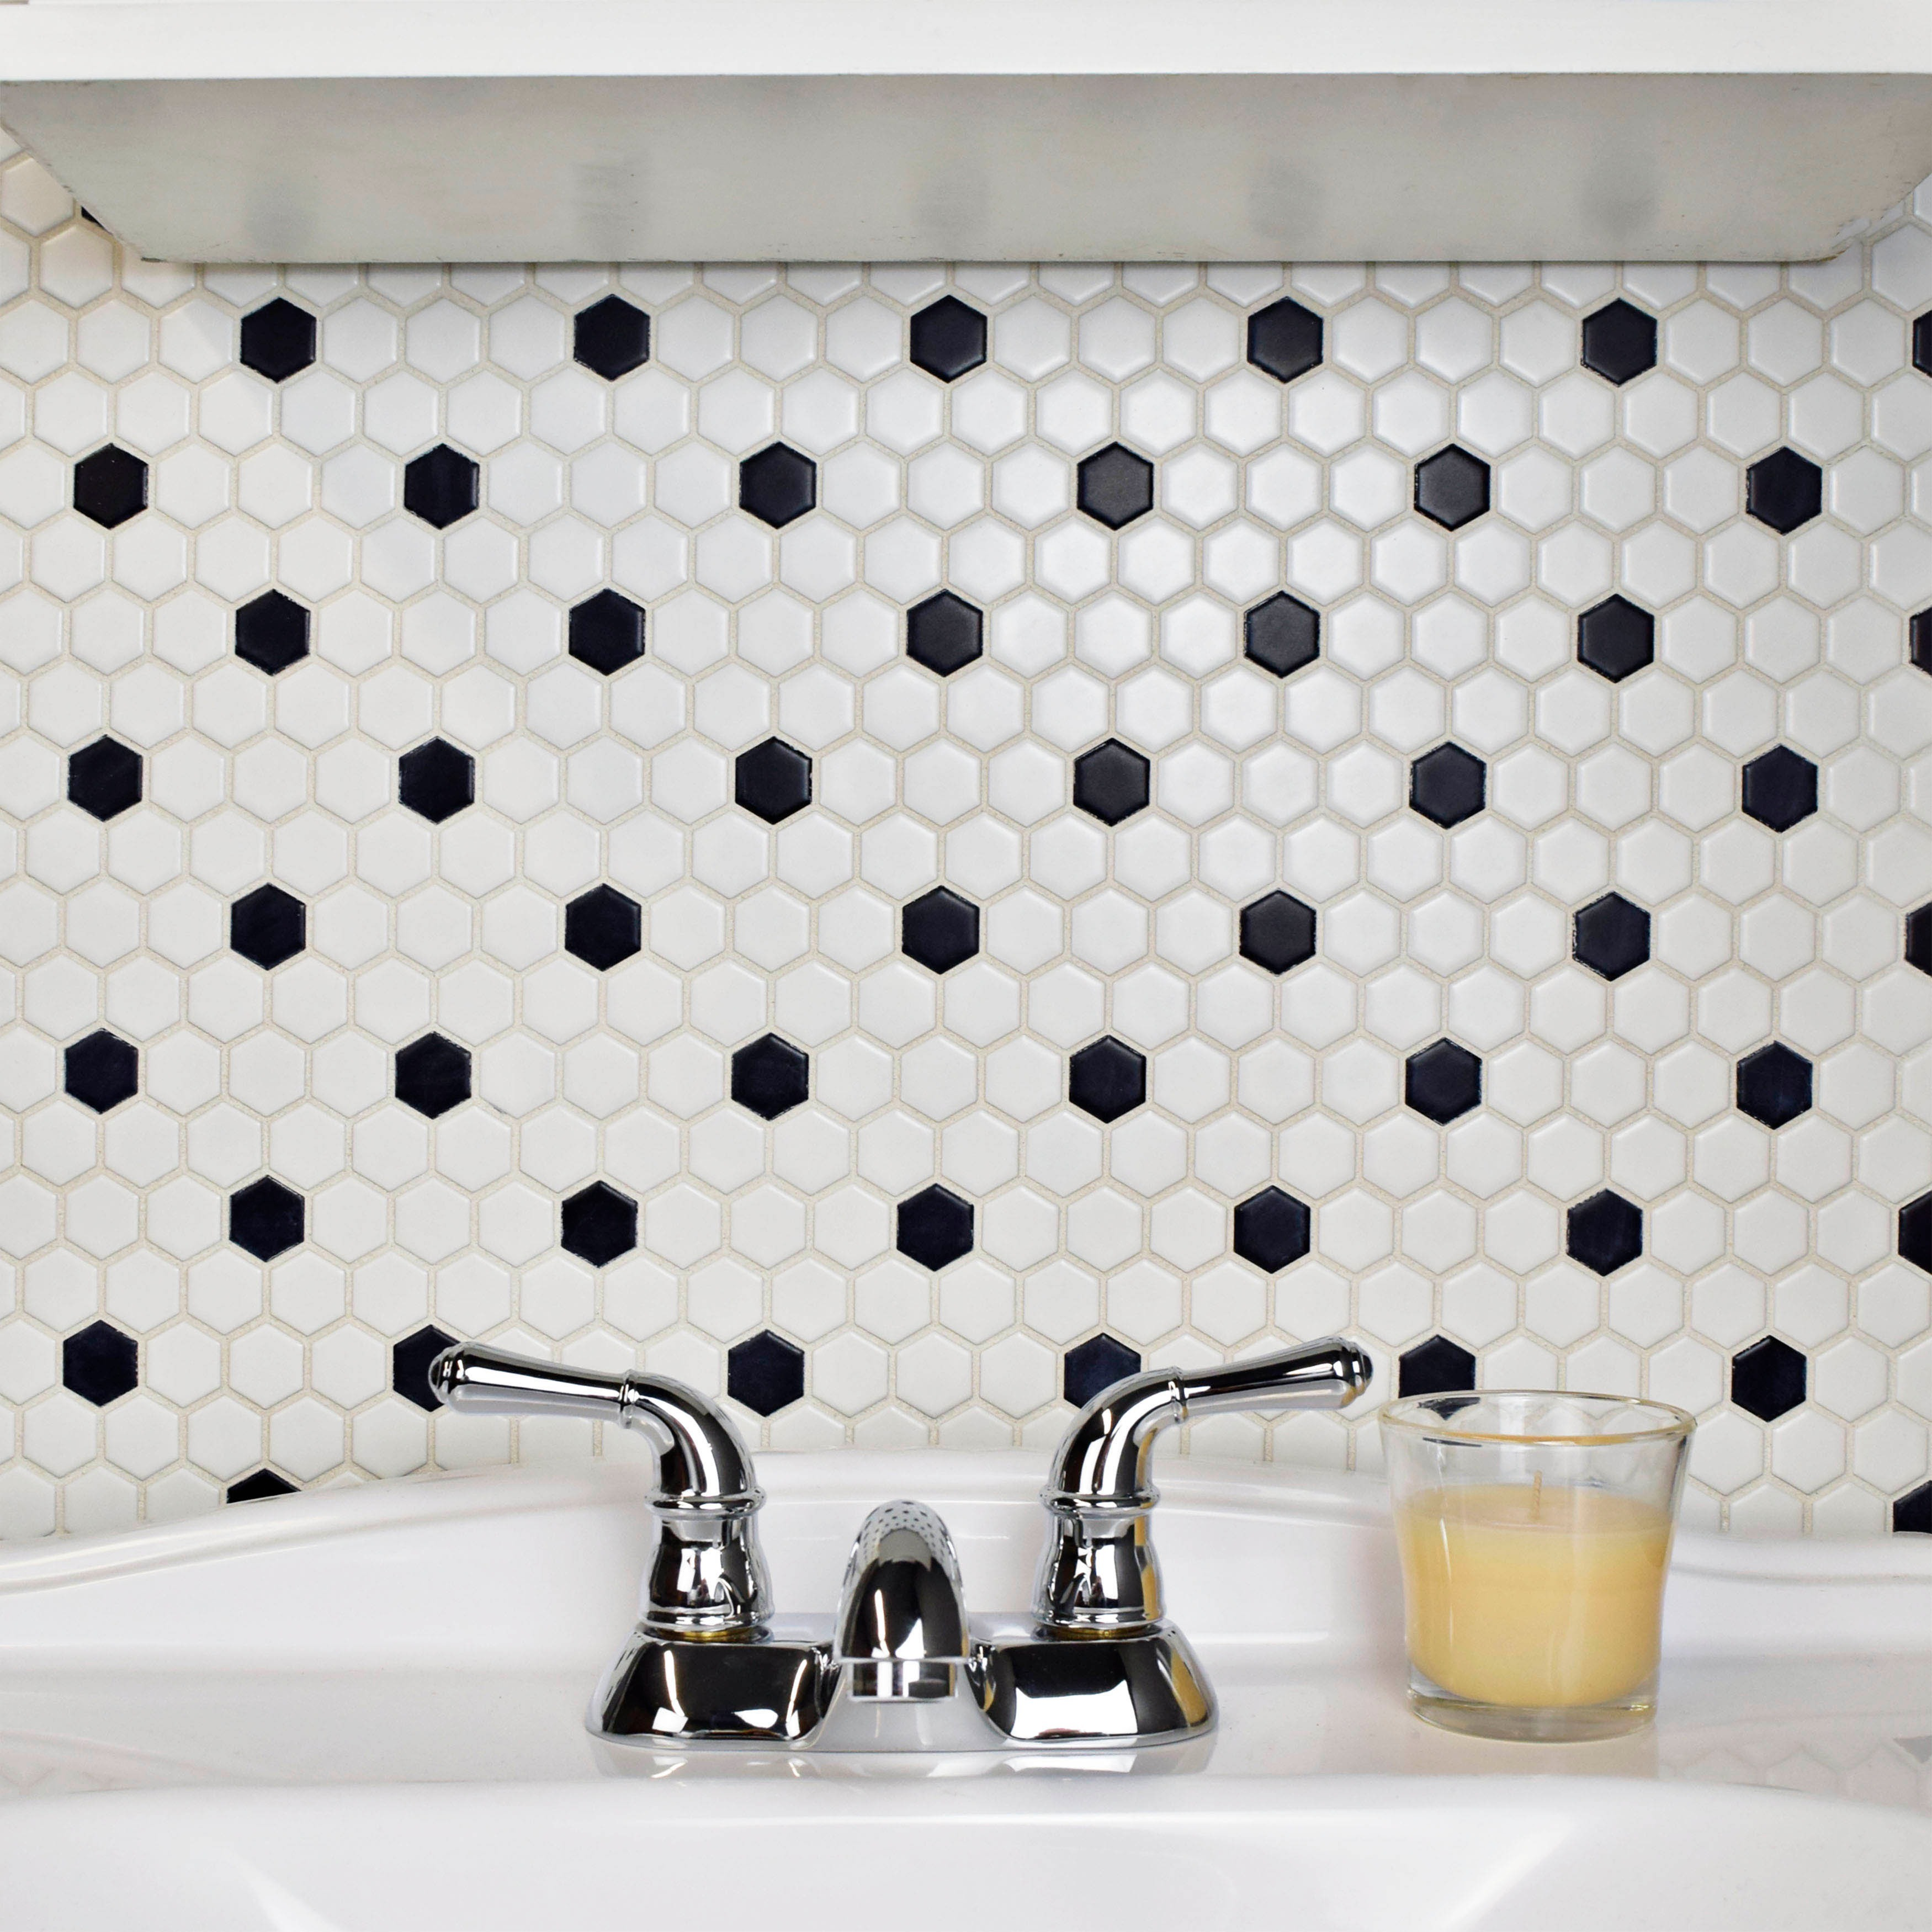 SomerTile 10.25x11.75-inch Victorian Hex White with Black Dot ...